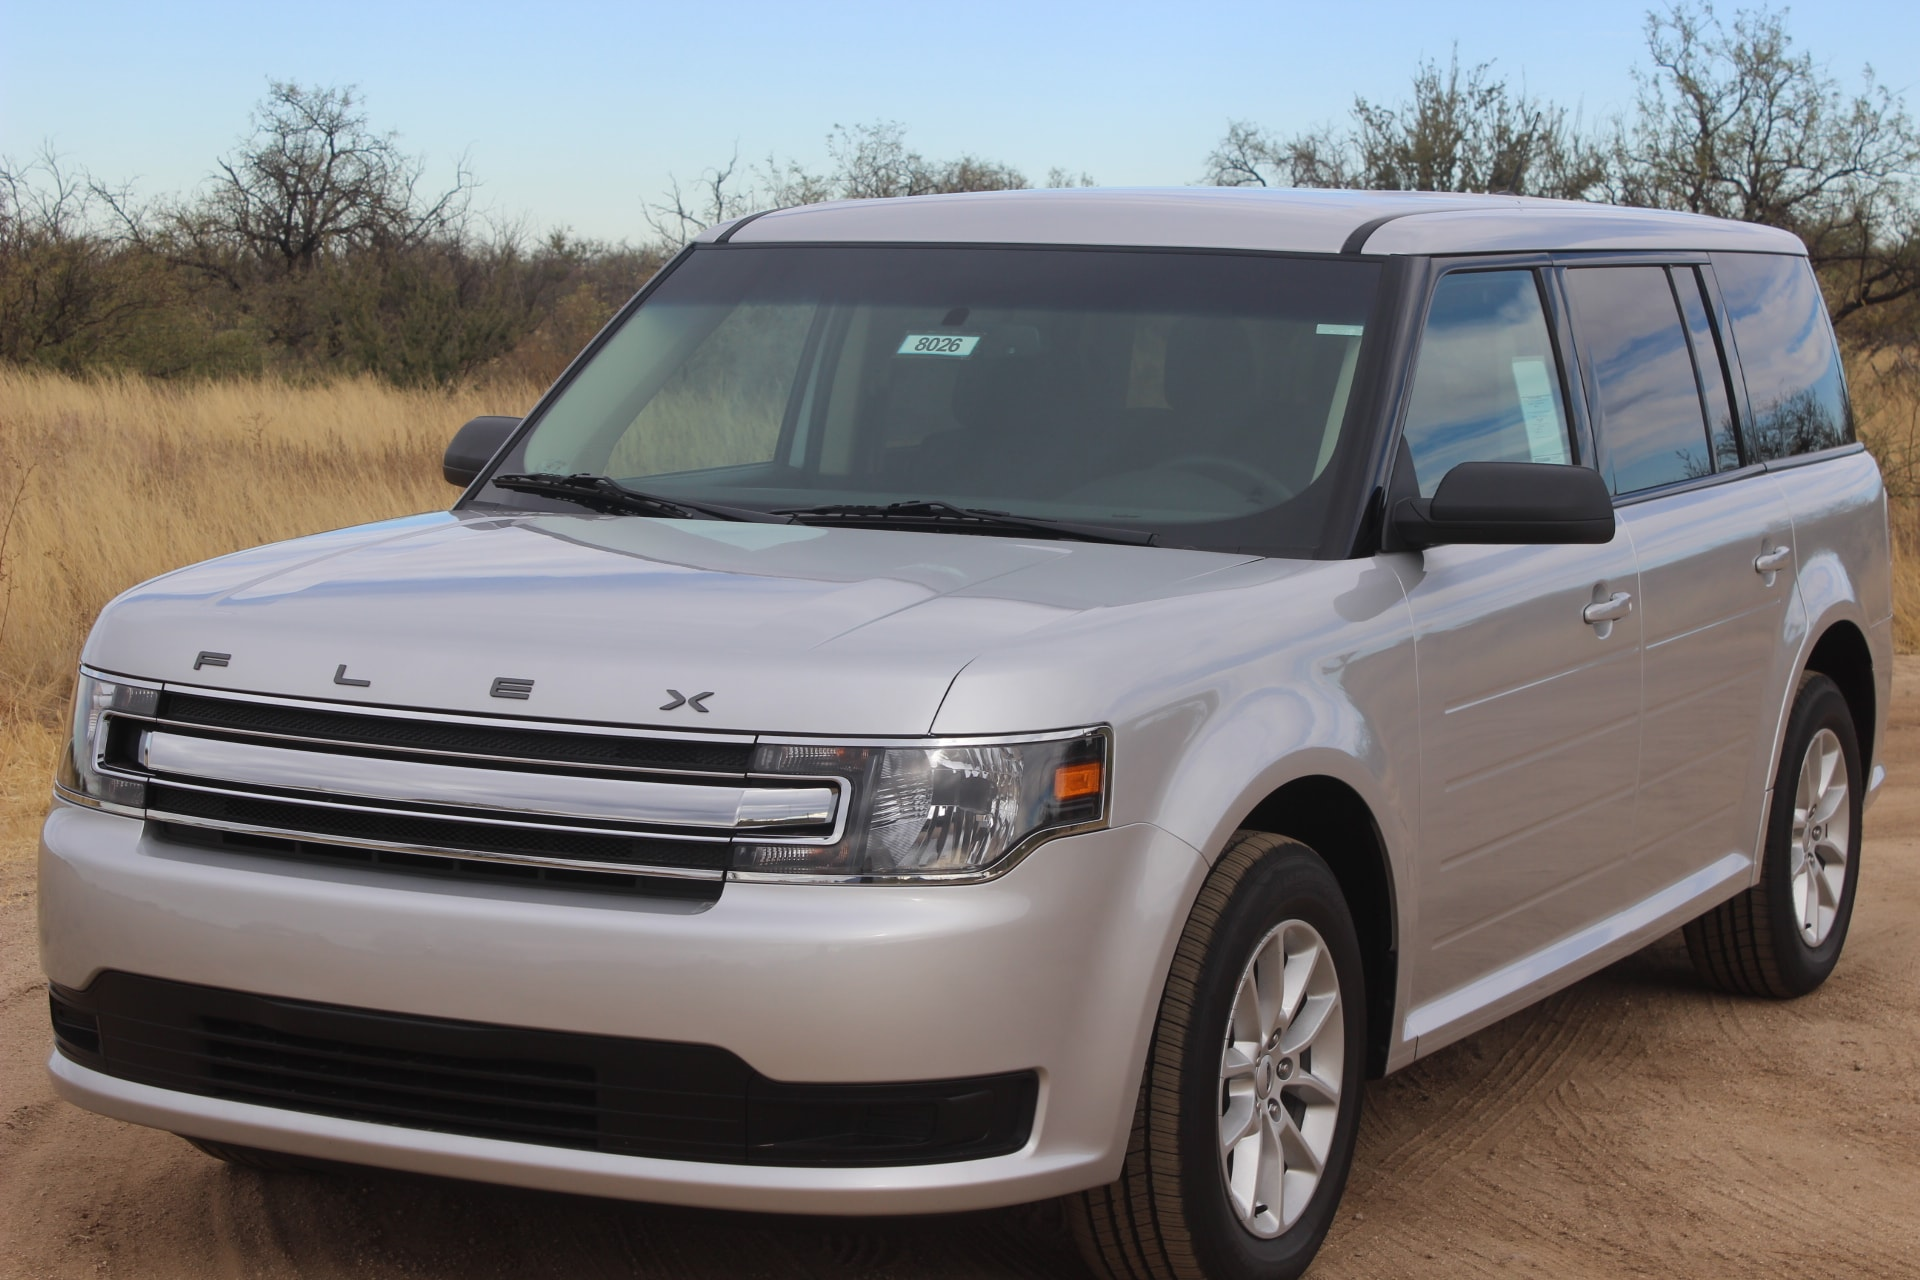 New 2018 Ford Flex SE Crossover for sale near Tucson, AZ